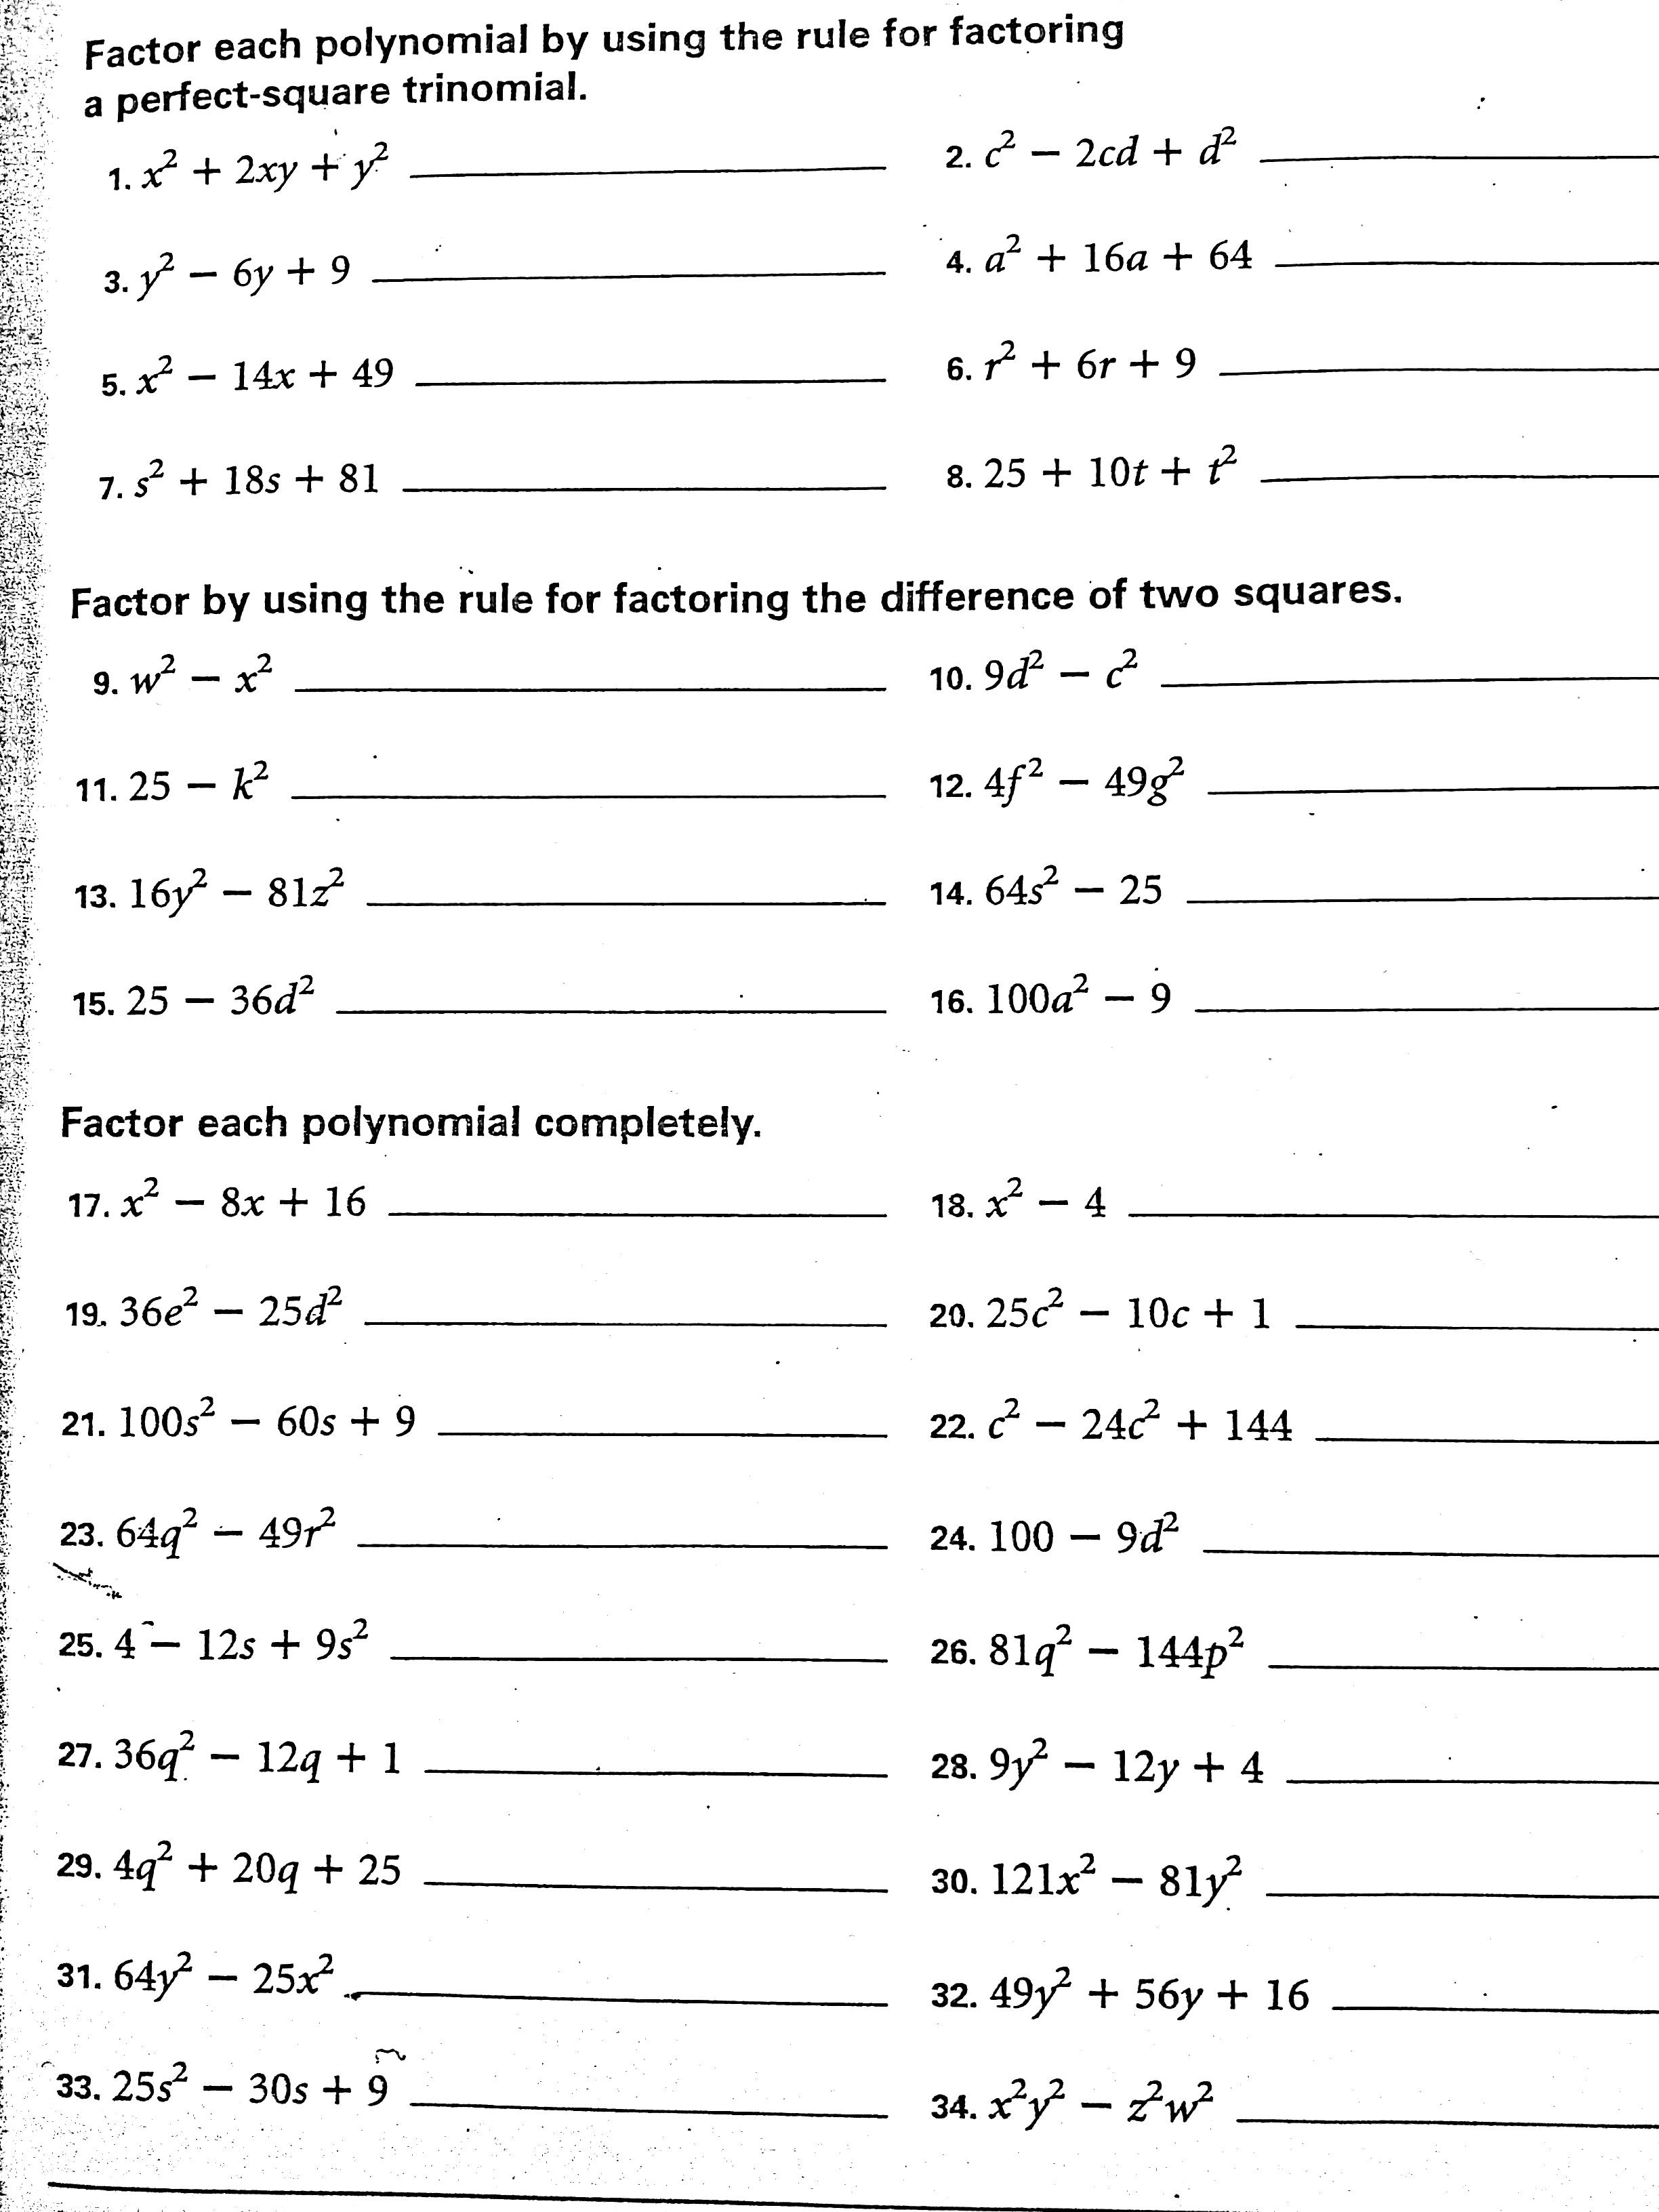 worksheet Factoring Gcf Polynomials Worksheet algebra 1 assignments swenson math attachments difference of squares perfect jpg factoring trinomials jpg